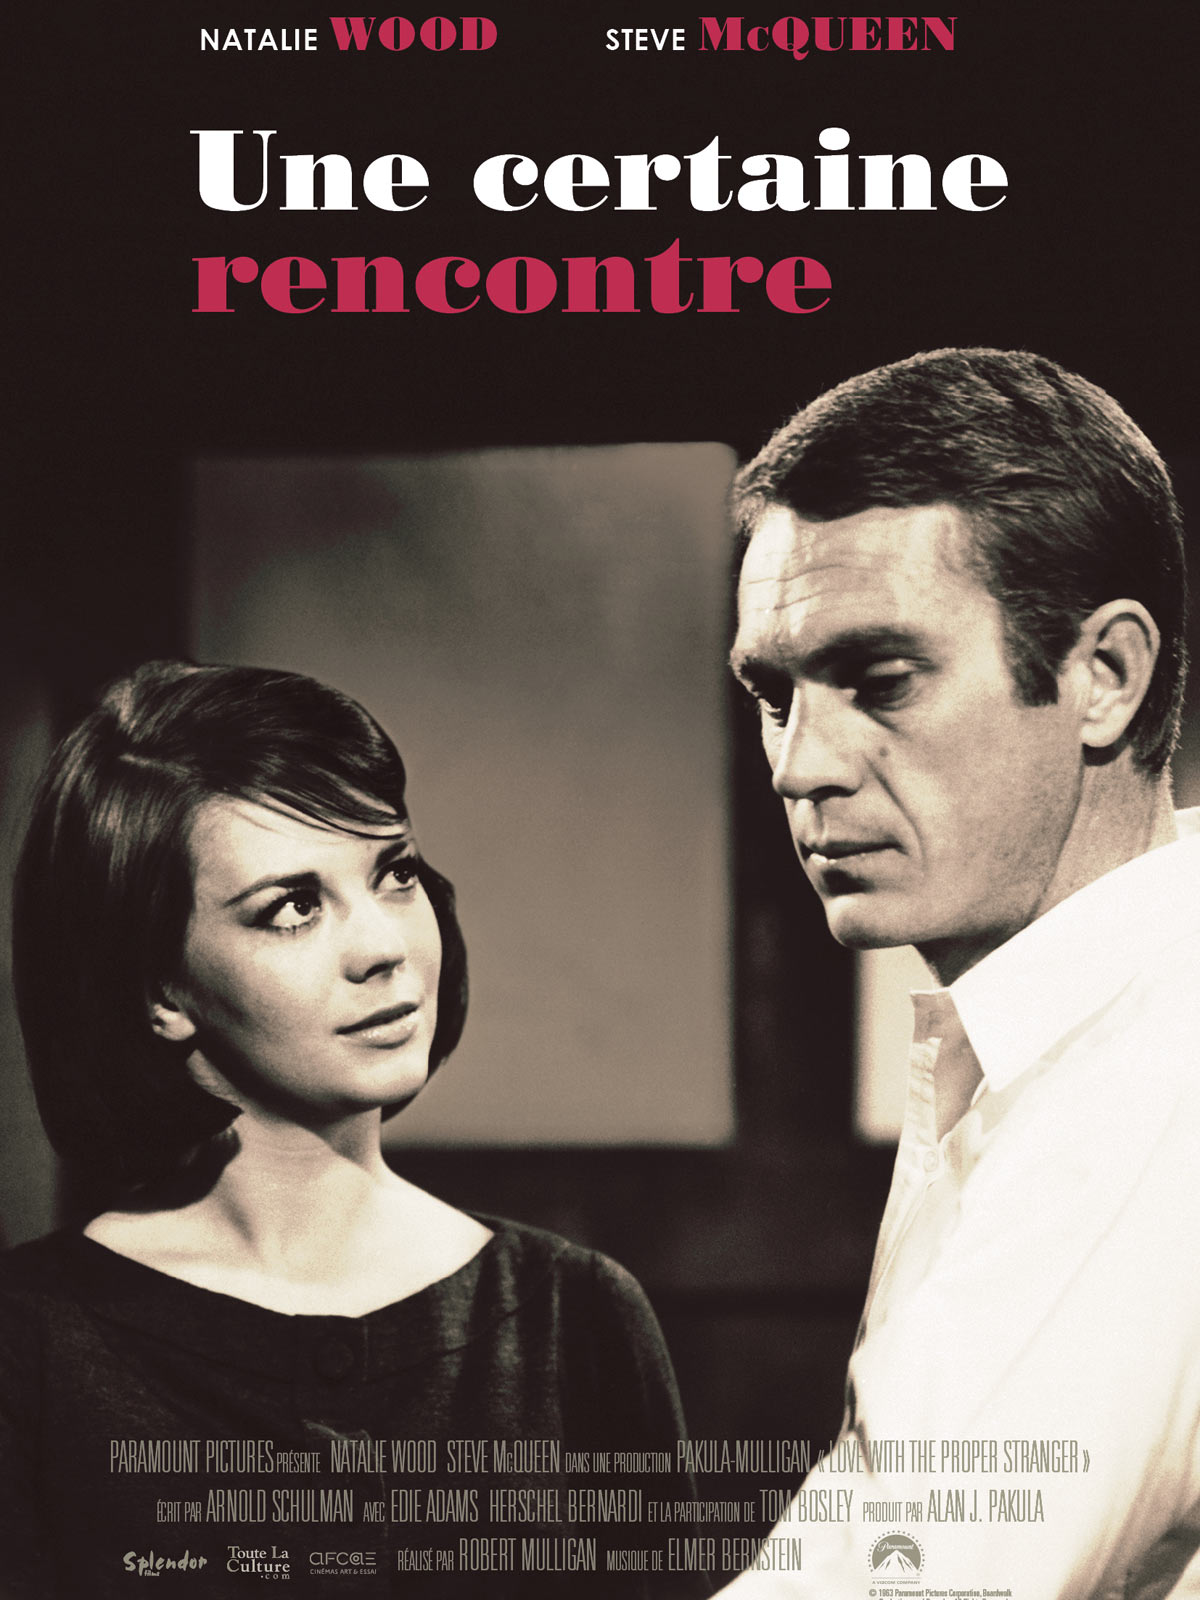 Une rencontre film complet streaming | Mcci